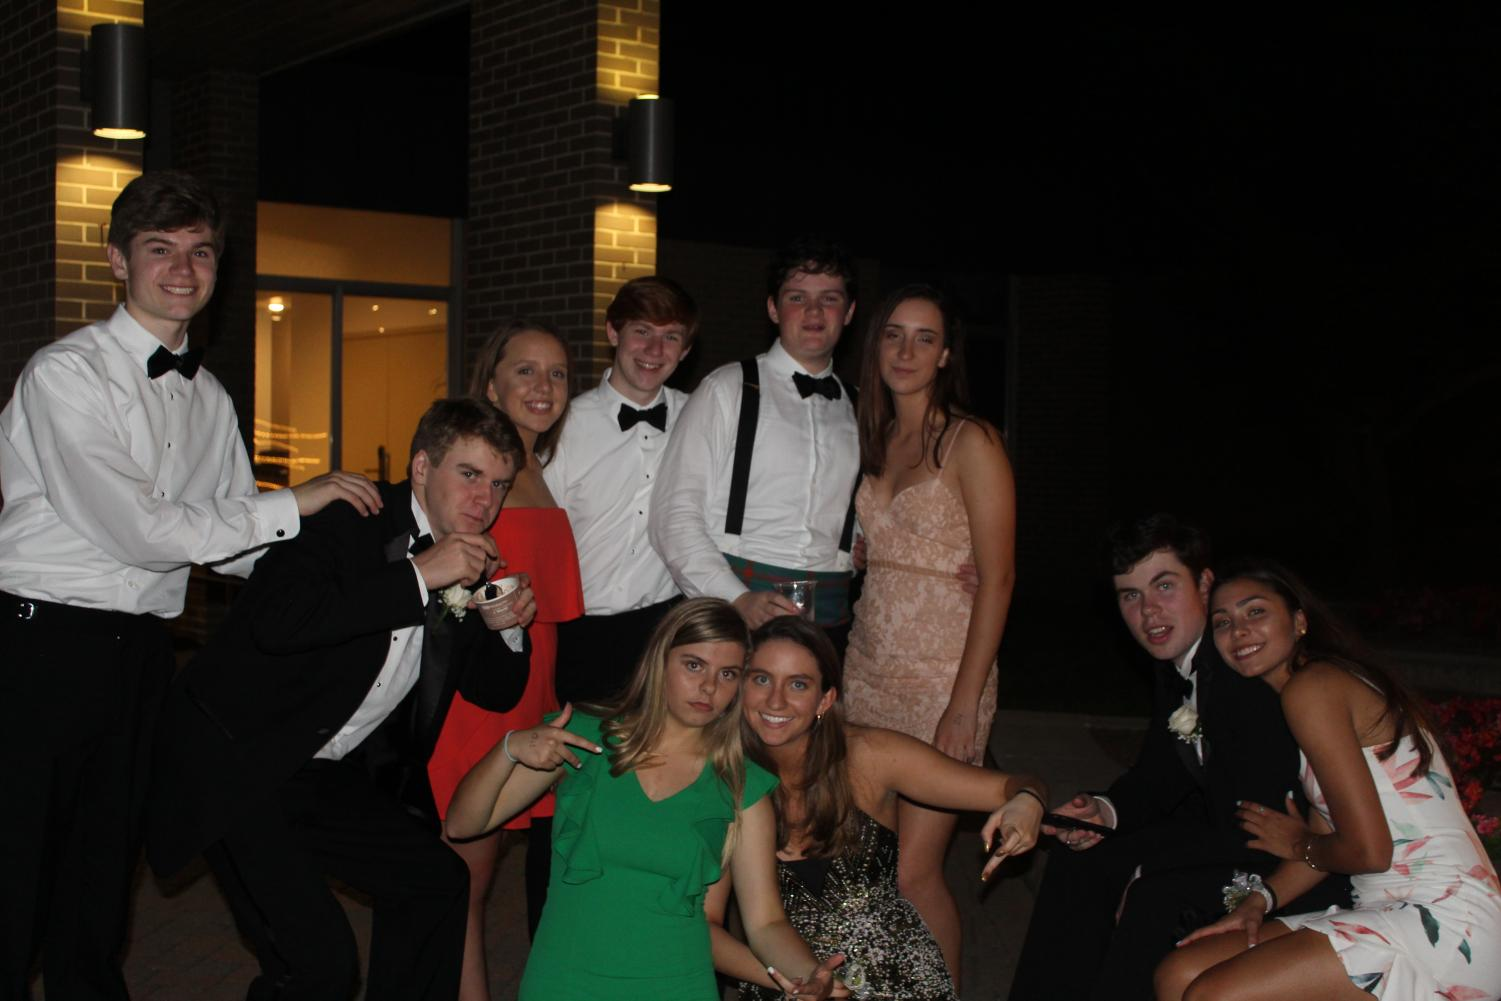 Juniors pose with their dates while they enjoy the ice cream sundaes in the courtyard.